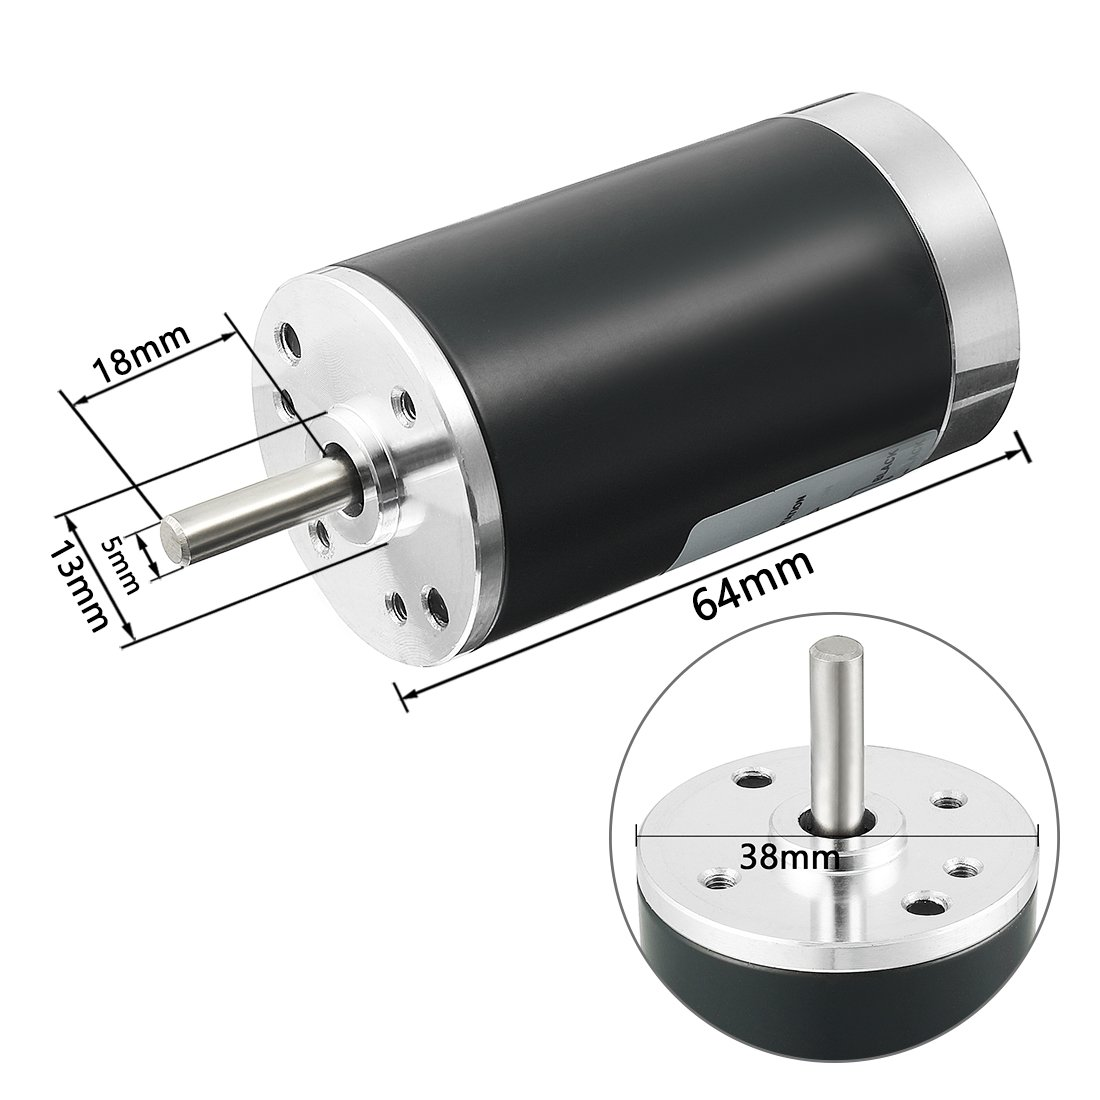 uxcell DC 12V 3000RPM Brushed Electric Motor 38mm CCW Replacement Motor